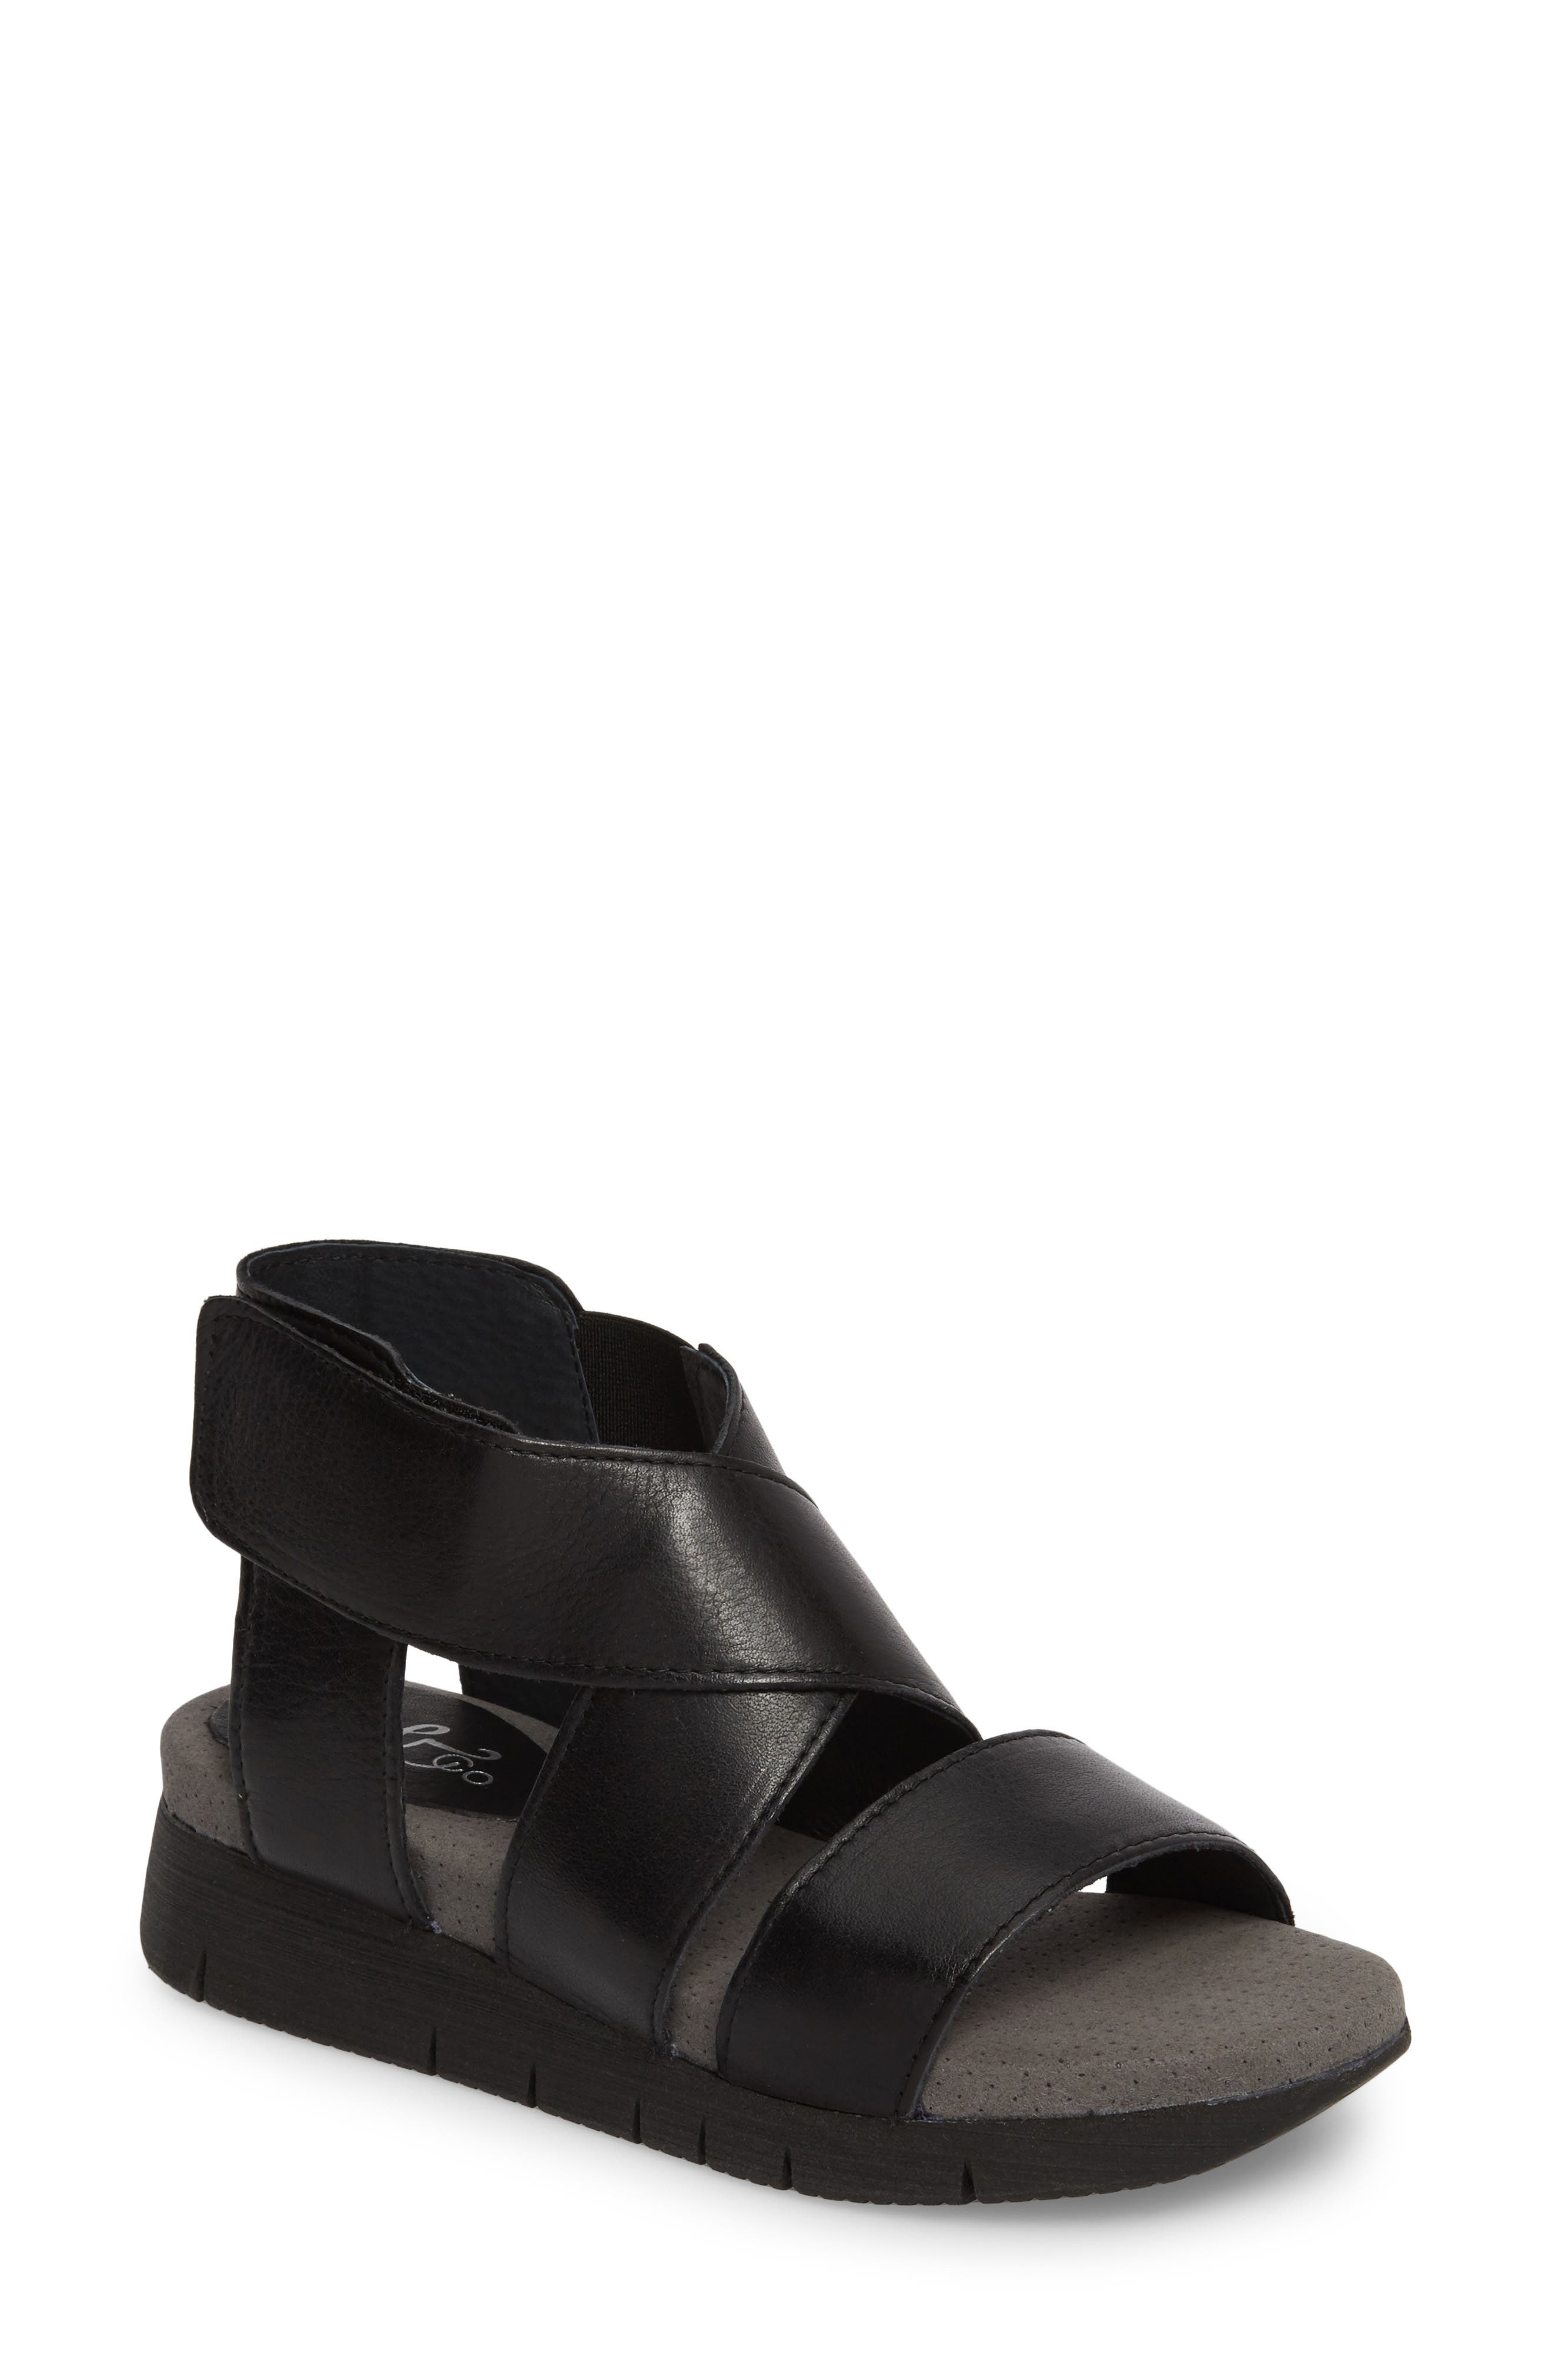 Piper Wedge Sandal,                             Main thumbnail 1, color,                             BLACK SAUVAGE LEATHER